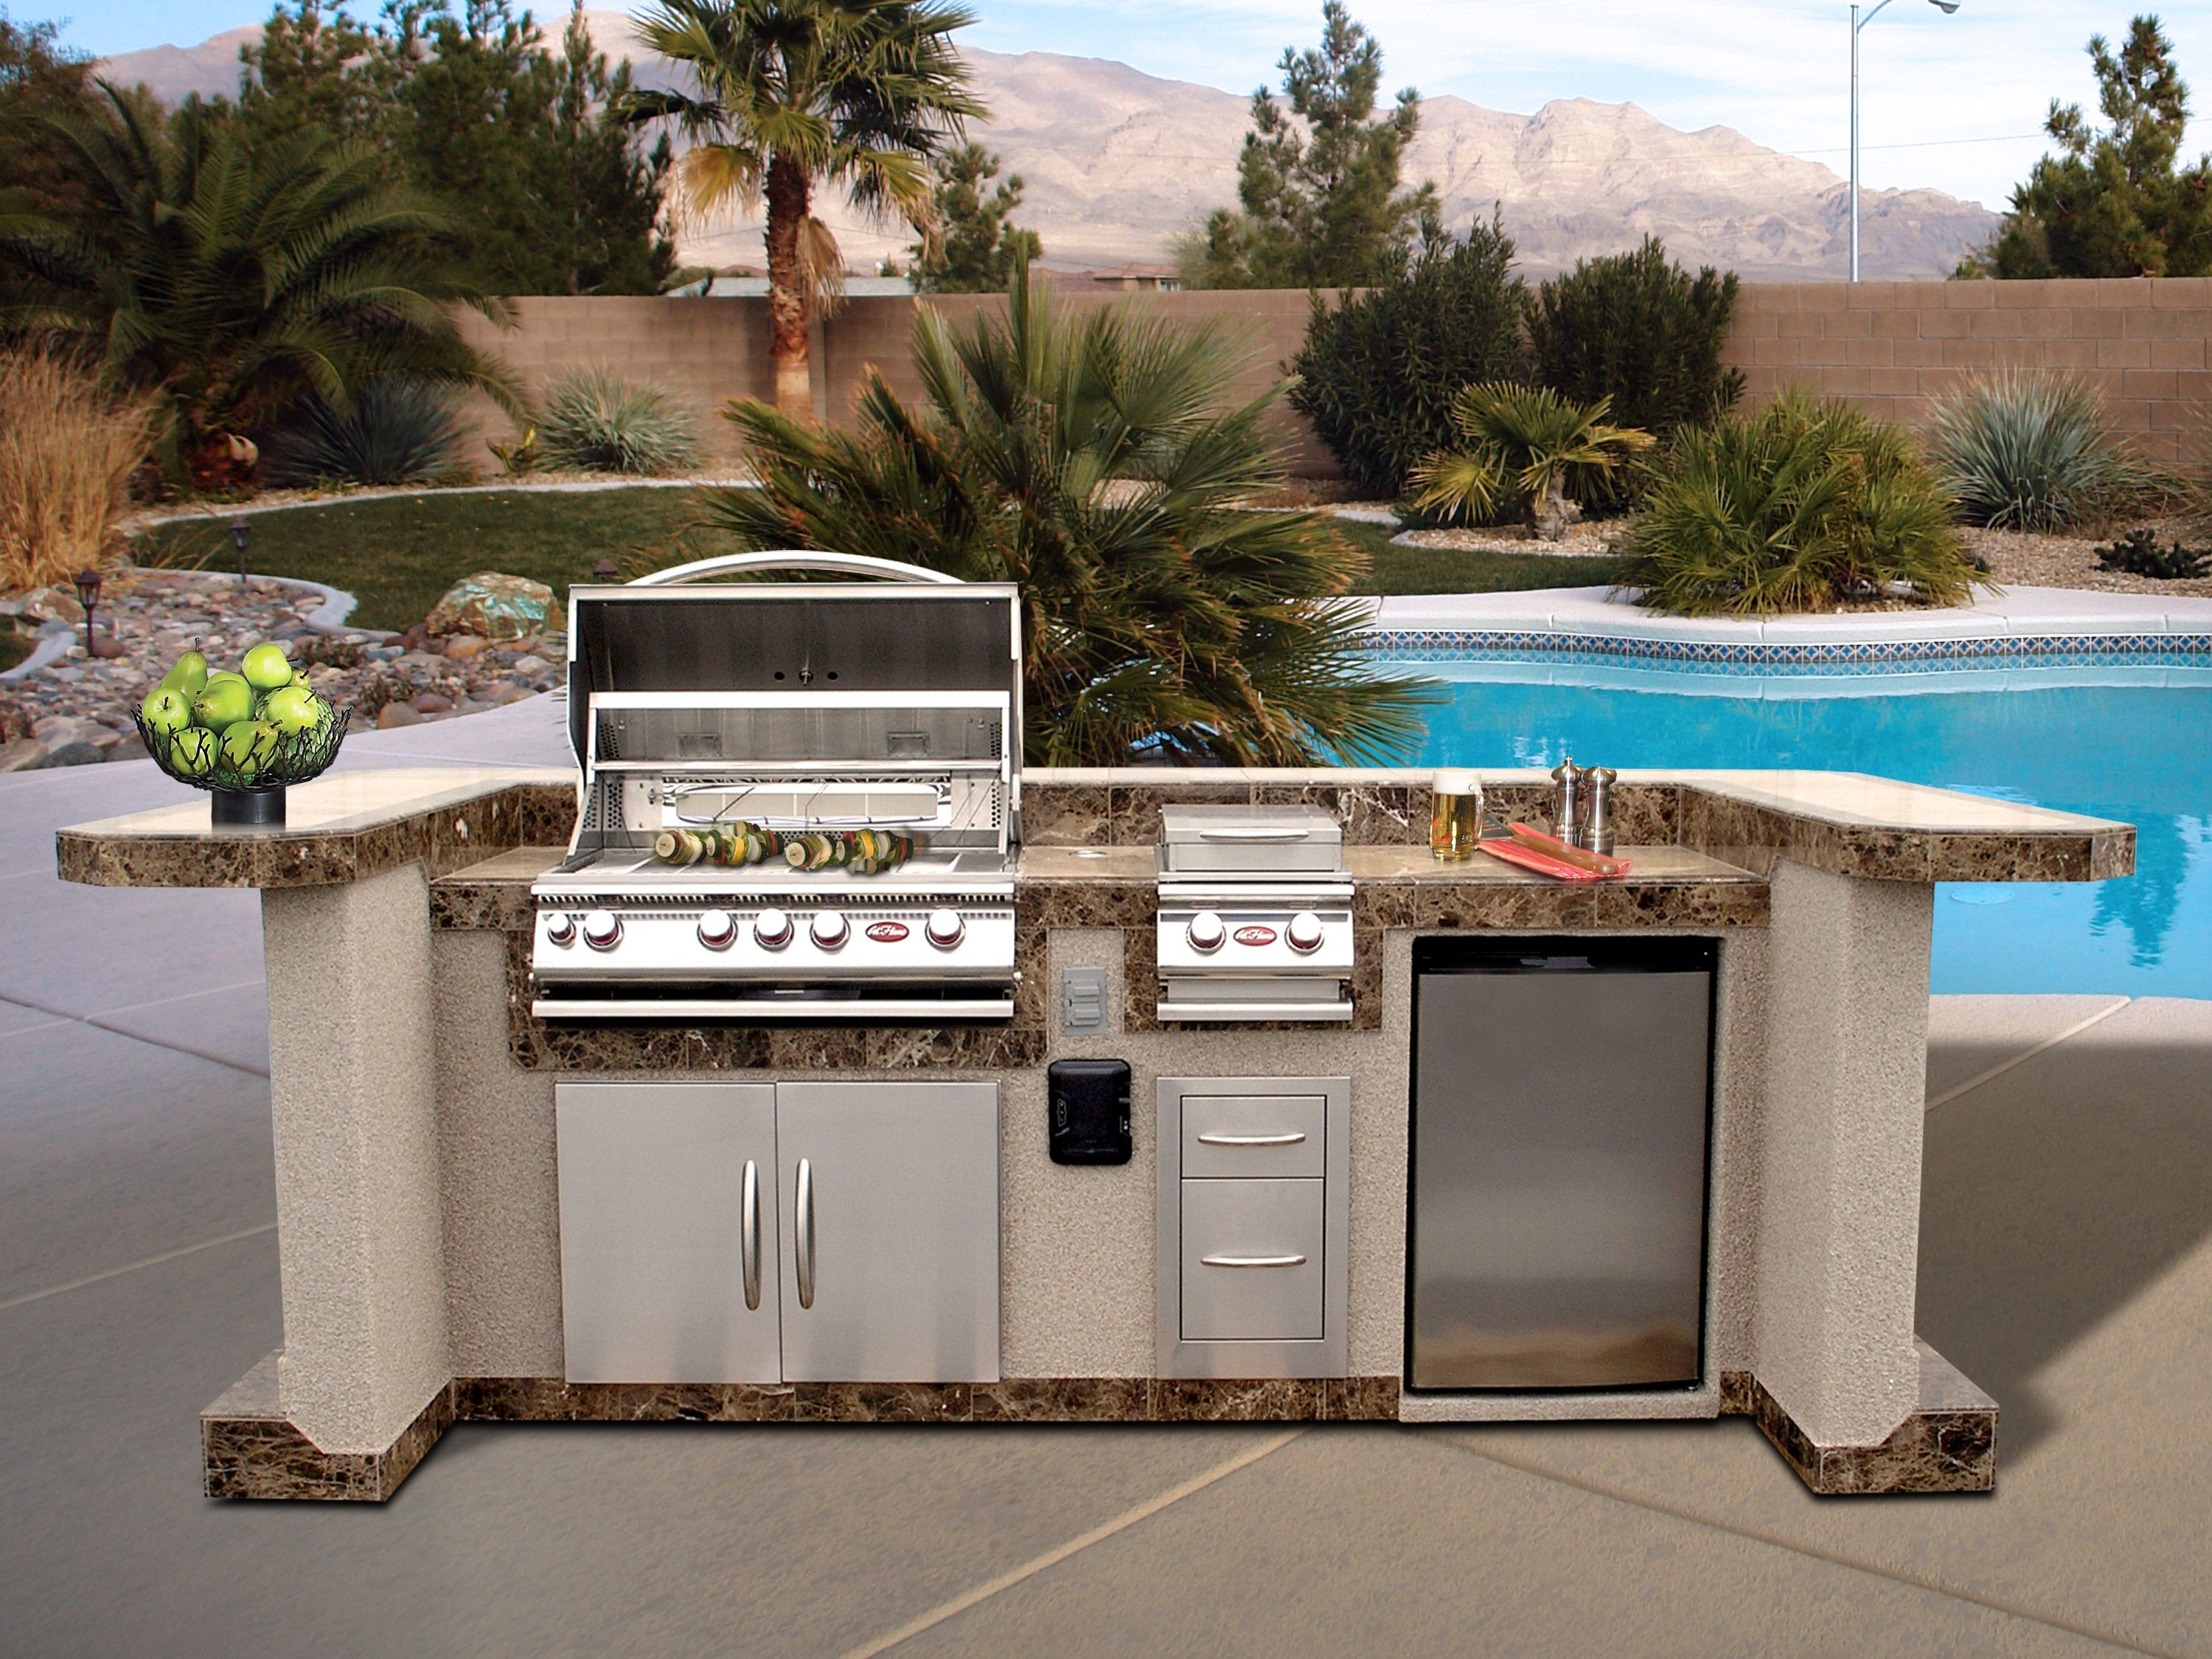 The Ultimate Outdoor Kitchen Cal Flame makes it easy to create your